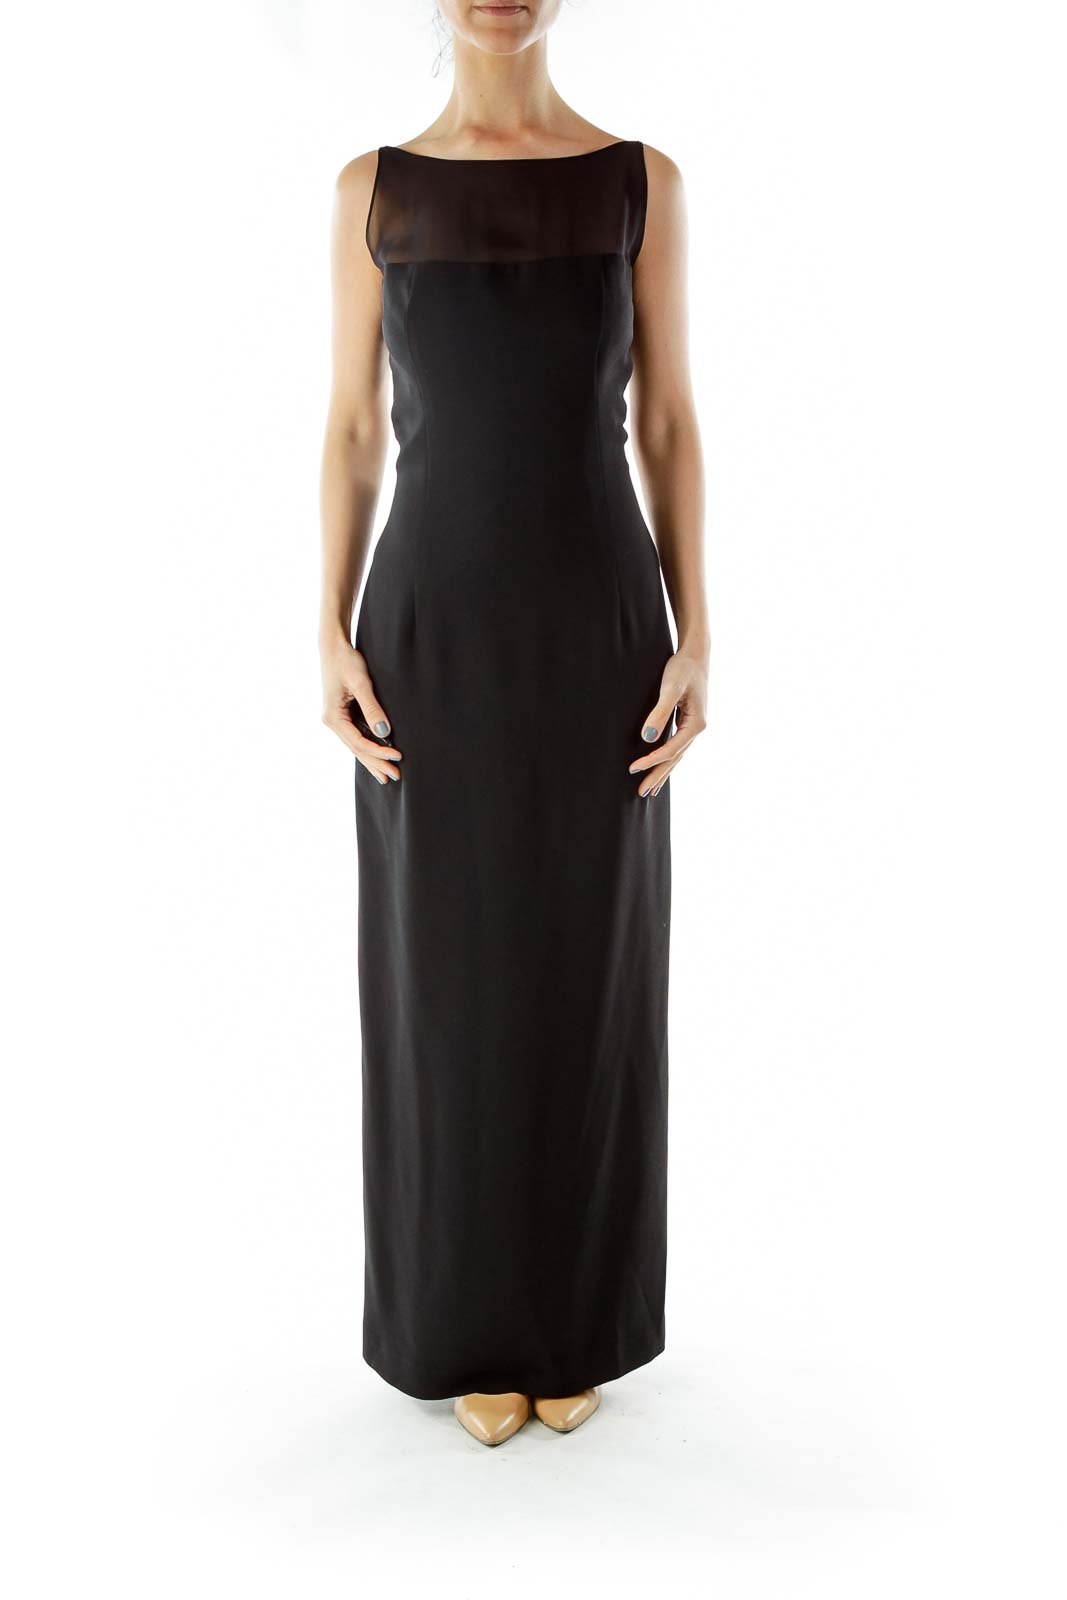 Black Evening Gown with Sheer Detail